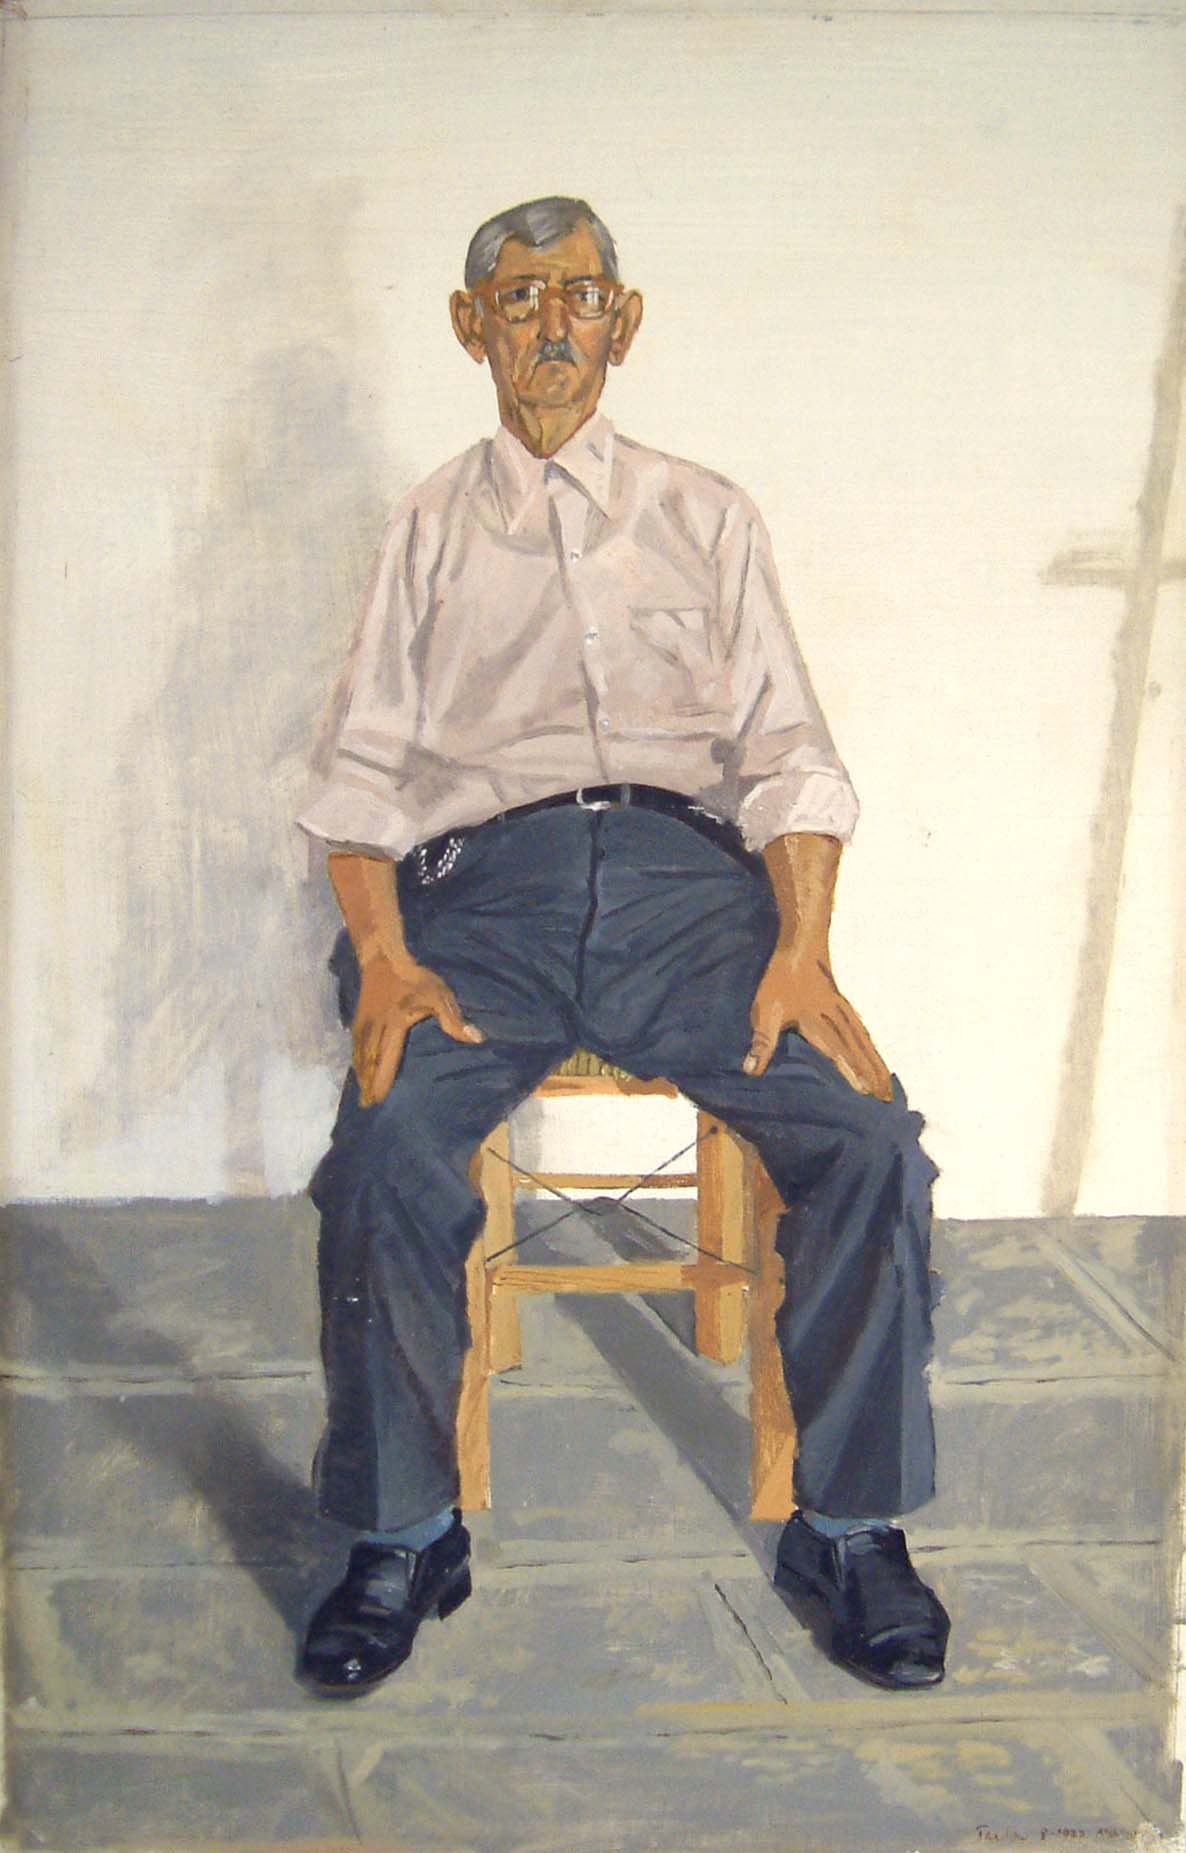 1978 oil on linen mounted on board. o kyrios yannis: he regularly whitewashed our house in chora, andros